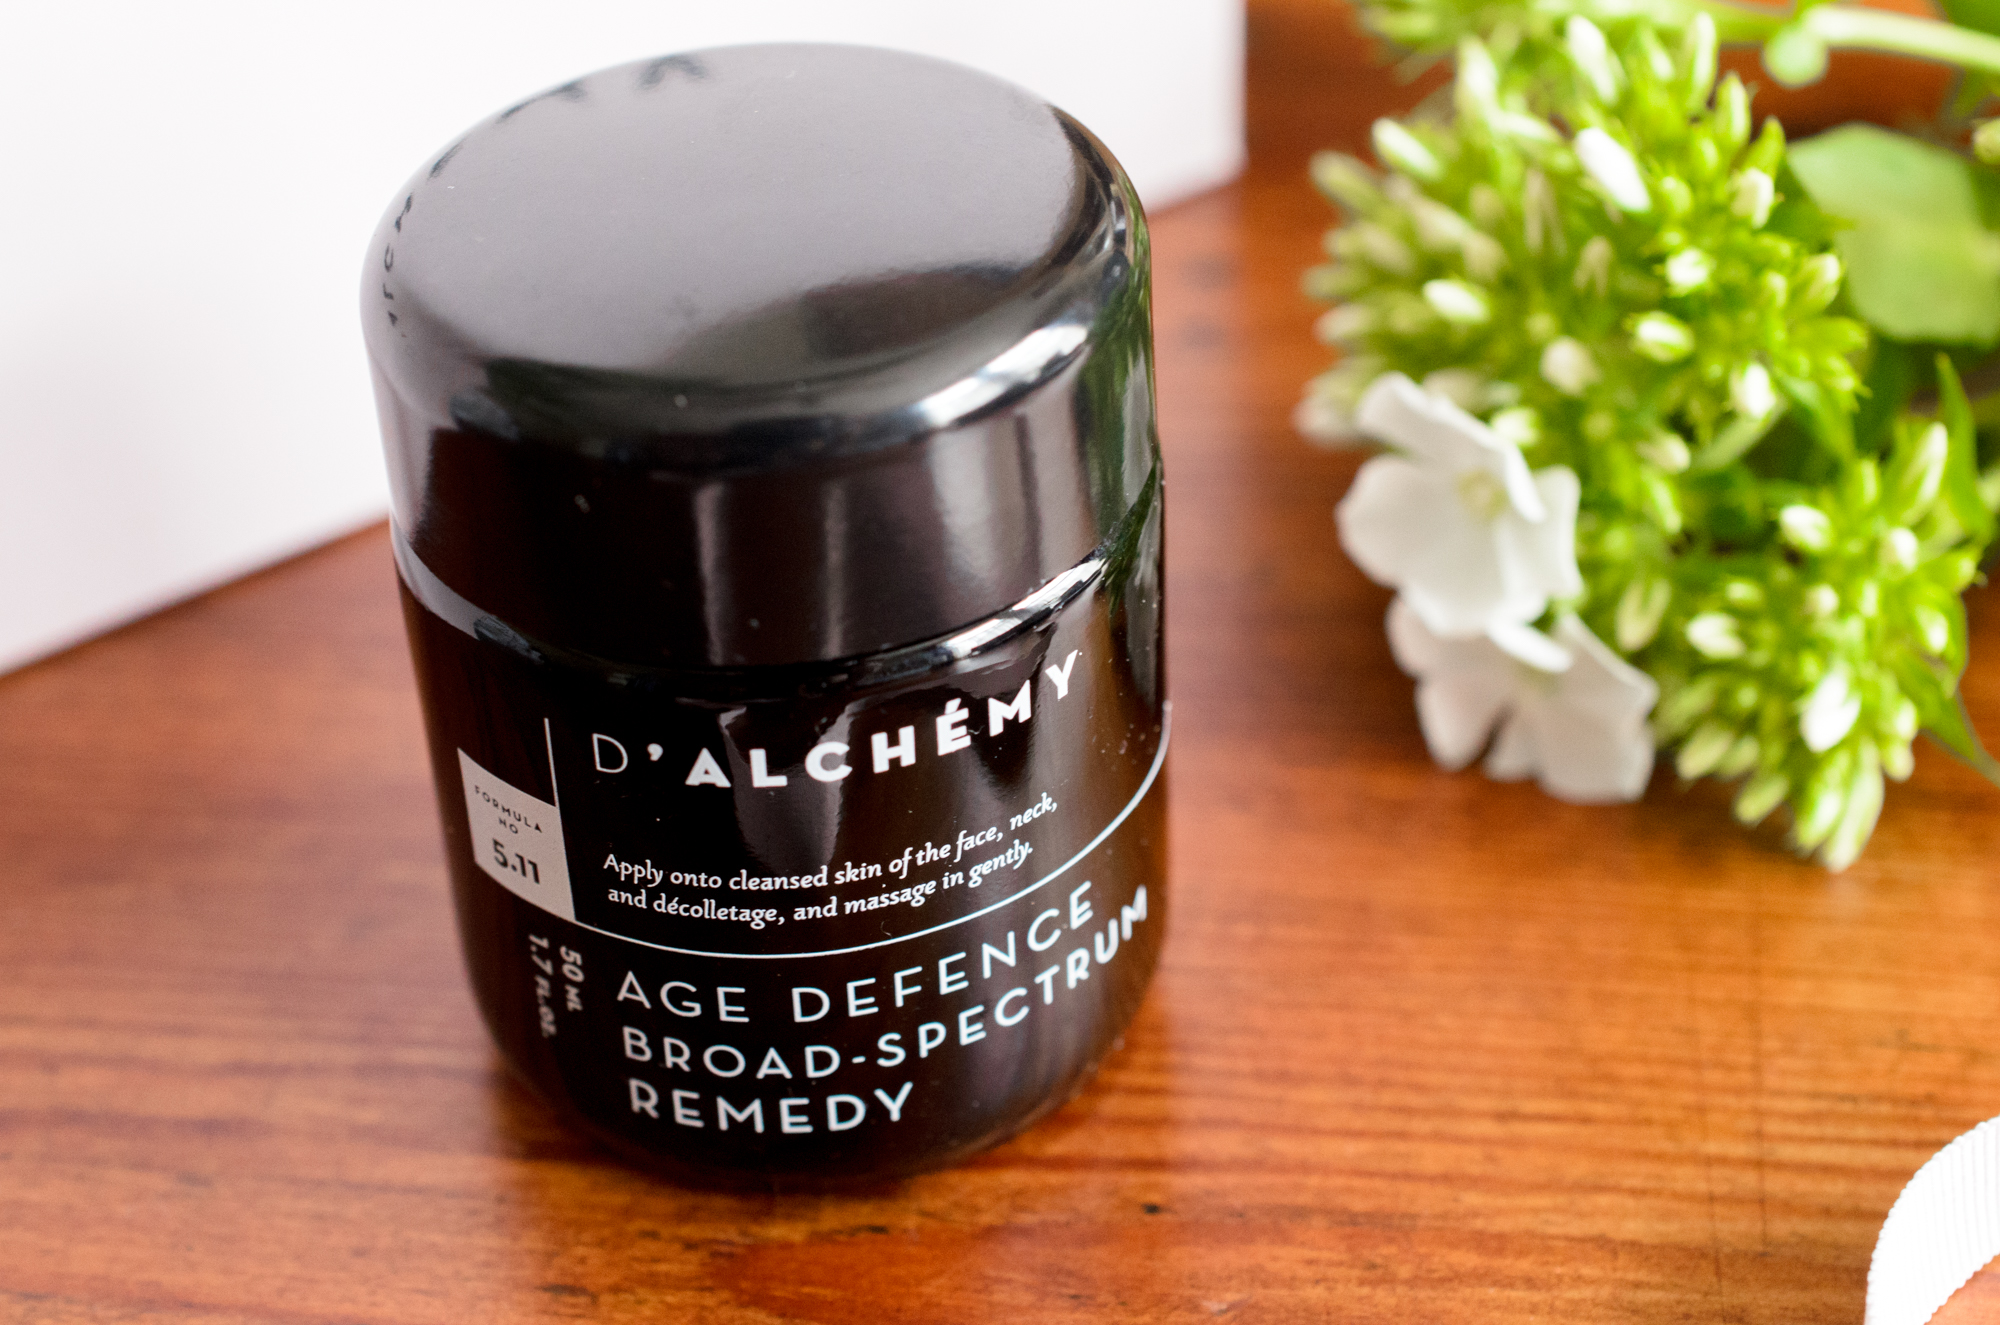 D'Alchemy Age Defence Broad-Spectrum Remedy